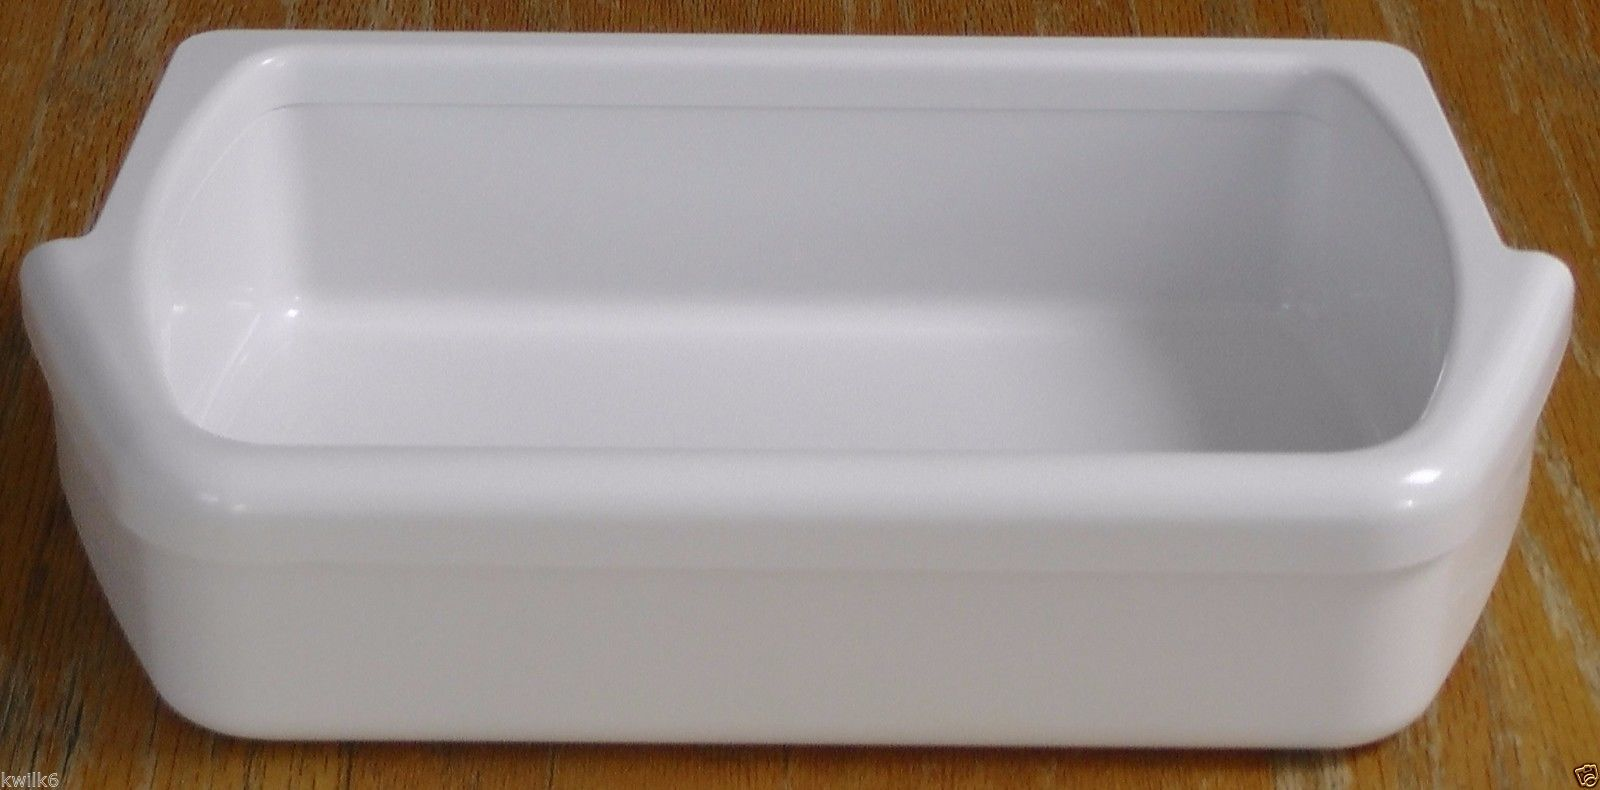 Primary image for Whirlpool Freezer Cantilever Shelf 2179580 - 2179608 - 2203872